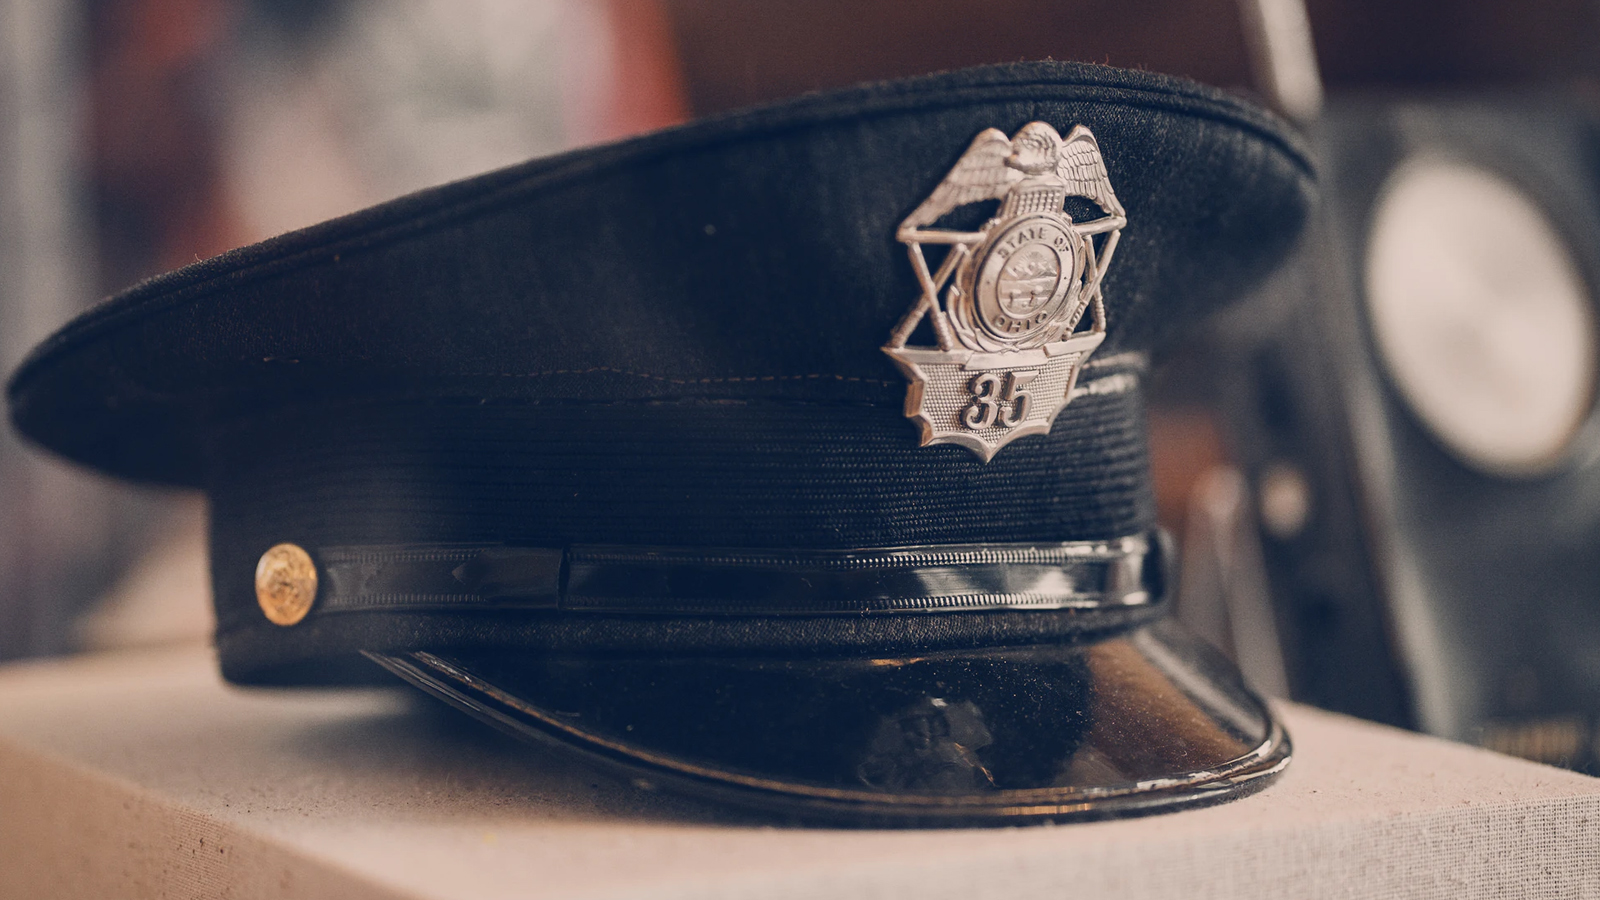 How Cops Can Find Hidden Strength in Times of Difficulty